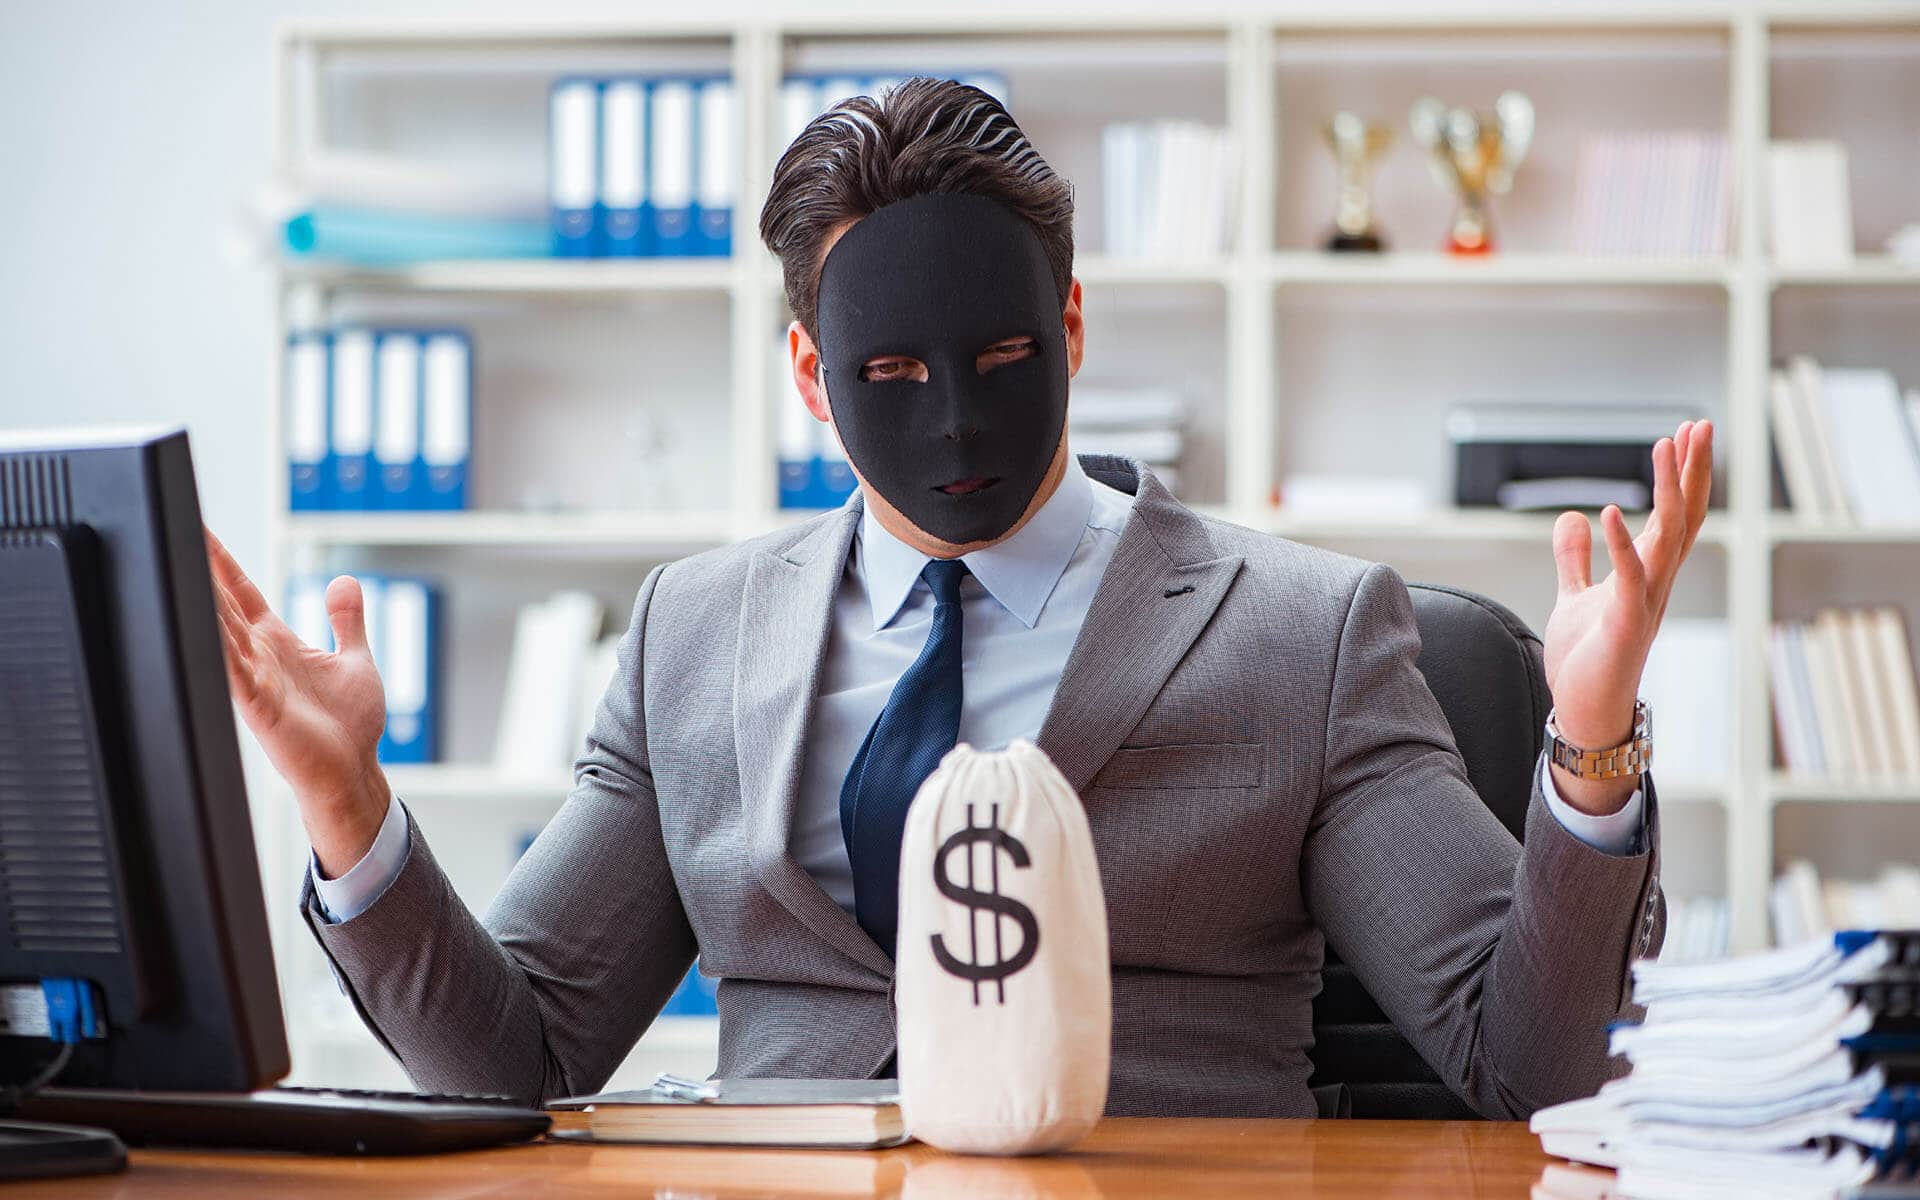 White Collar Crimes – Signs of Employee Theft